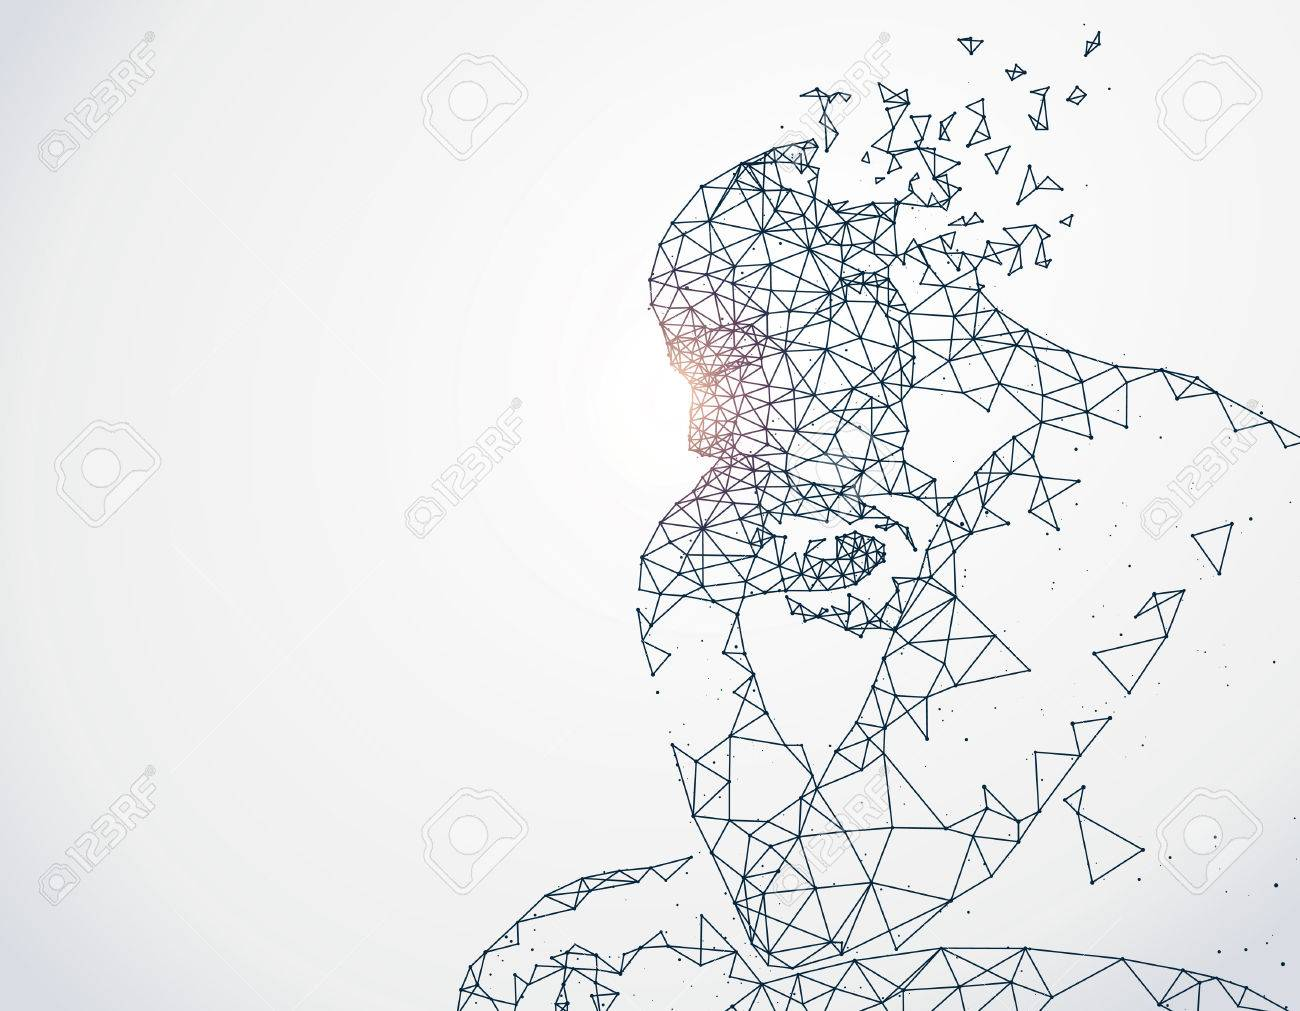 Lines connected to thinkers, symbolizing the meaning of artificial intelligence. - 68925091